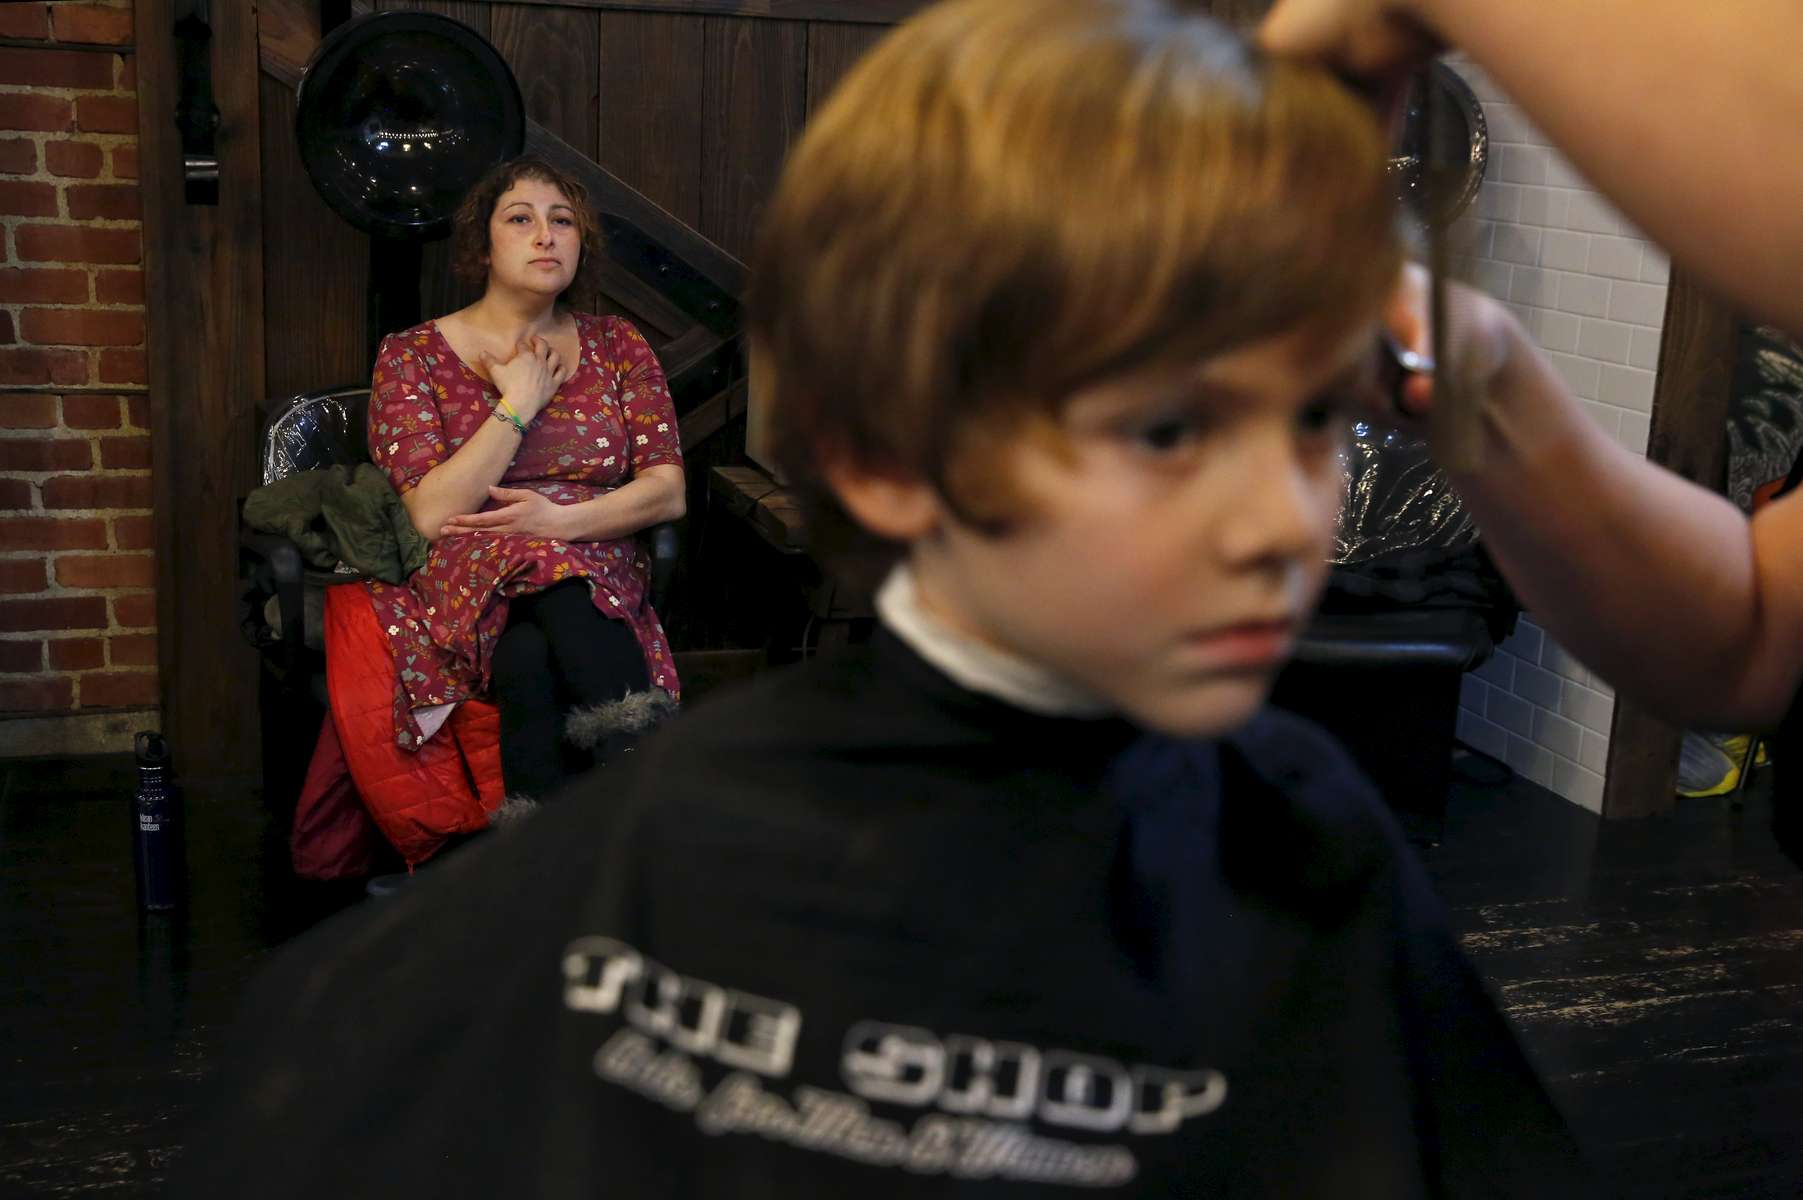 Olivia Kaplan, 4, gets her bangs trimmed by Bobby Jean Larrañaga while her mother Sara watches nervously at The Shop Feb. 17, 2017 in Berkeley, Calif. Olivia, James' sibling, had been describing herself as trans for much of the past year since her brother came out as a transgender boy. Sara and Ben decided to brush it off to see if it was just something she was saying to copy her sibling. But it became apparent over time that it was very real to Olivia. She has always been a feminine child and she finally shouted at her parents that she was a girl at the beginning of the year. They cautiously allowed her to begin the transition. As of June, 2017, Olivia is still happily presenting as a girl. Sara and Ben plan on doing what they have for James: provide a supportive space for their children to be themselves whoever they turn out to be later in life.